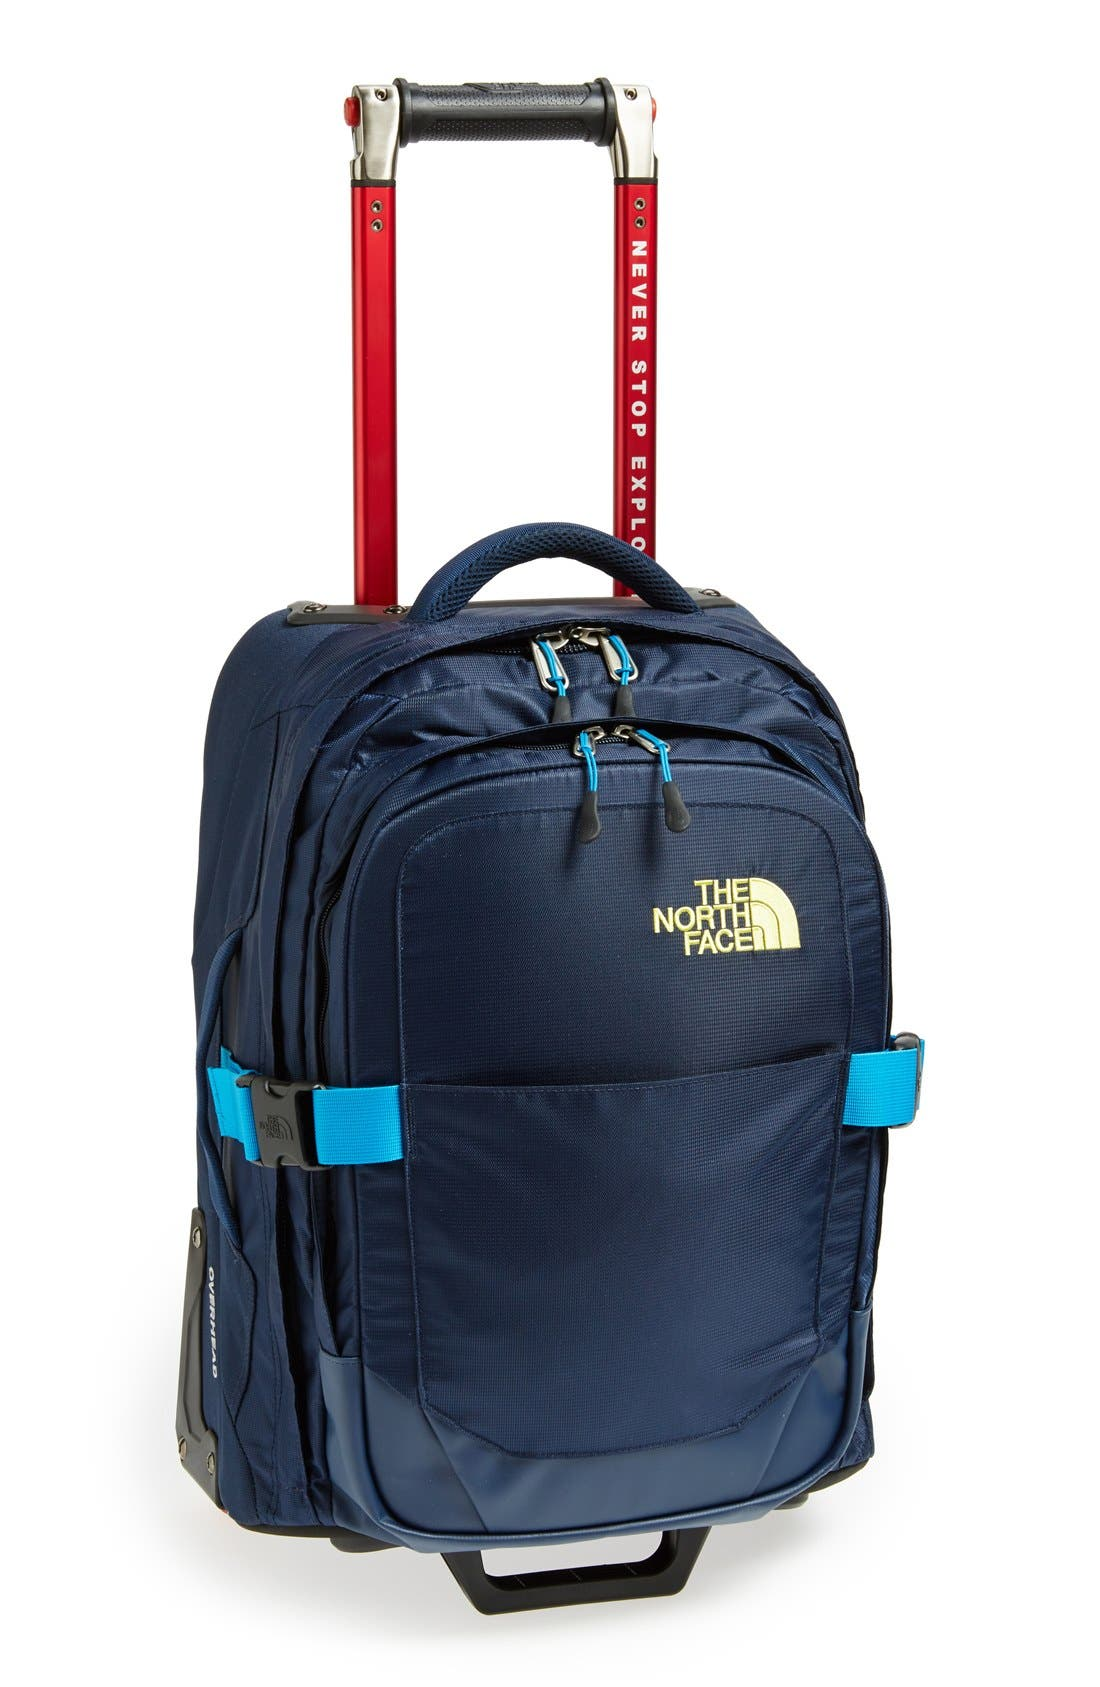 Alternate Image 1 Selected - The North Face 'Overhead' Rolling Carry-On